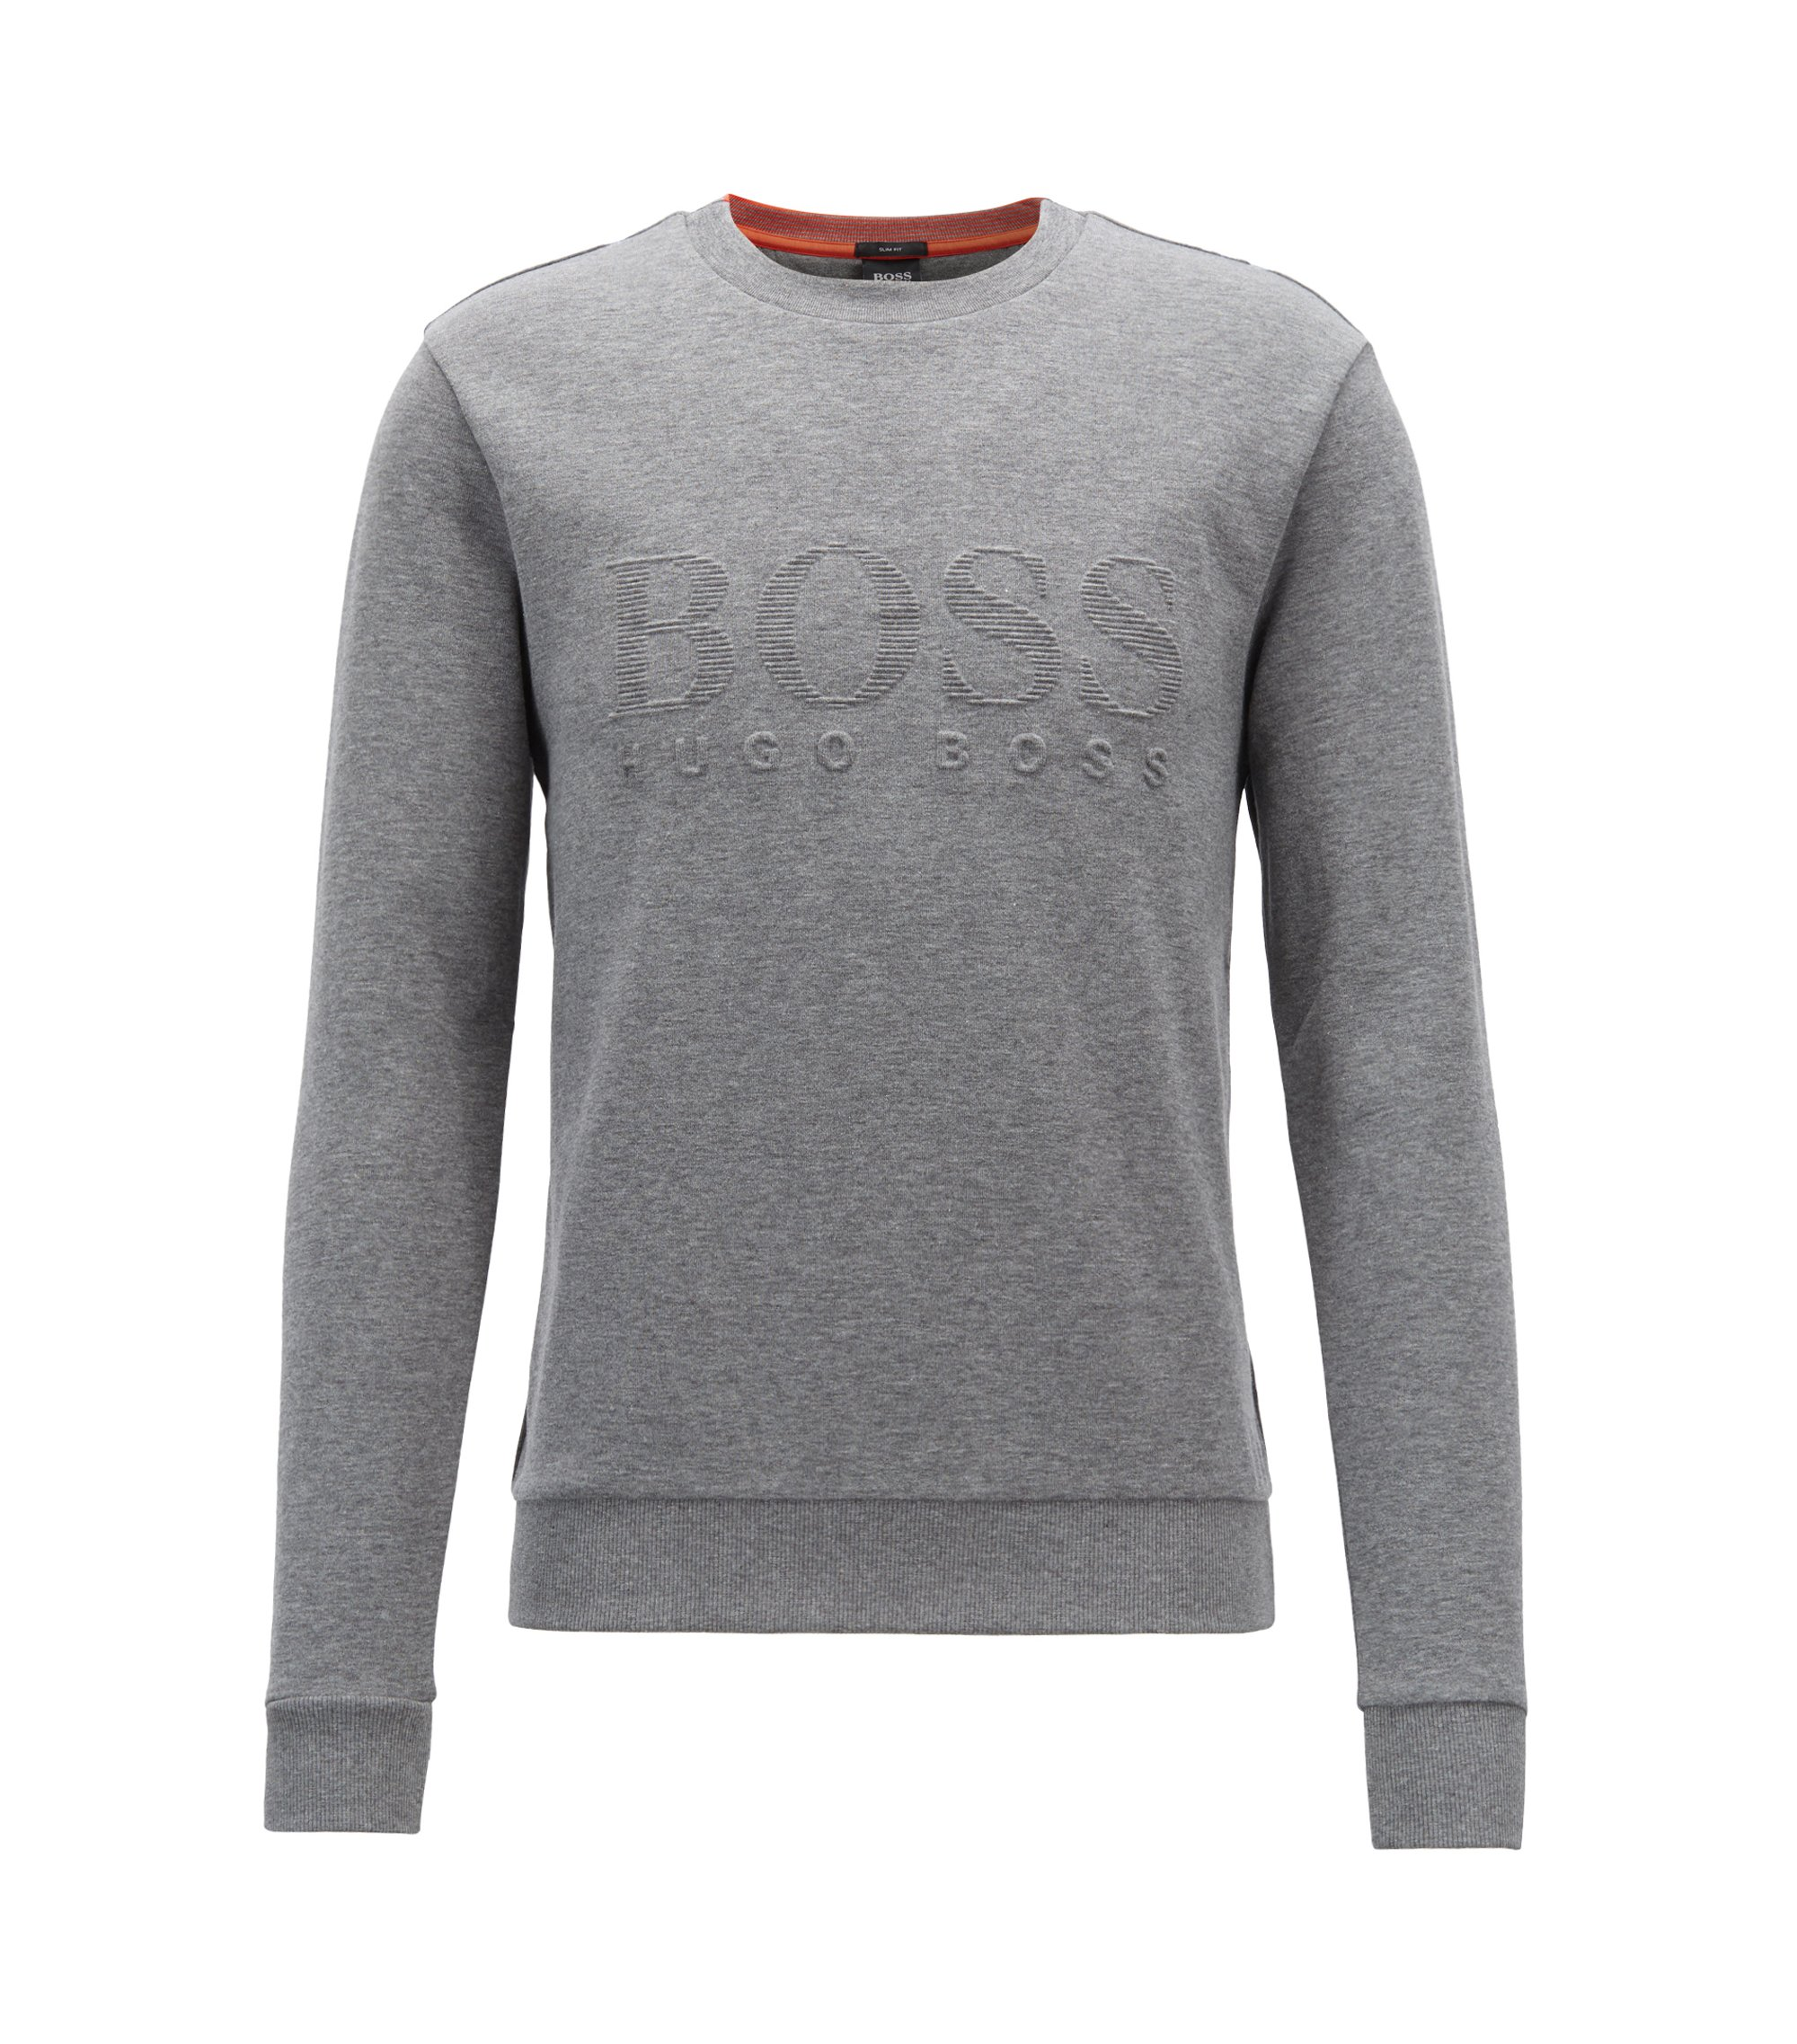 Slim-fit sweatshirt with tonal embossed logo, Grau